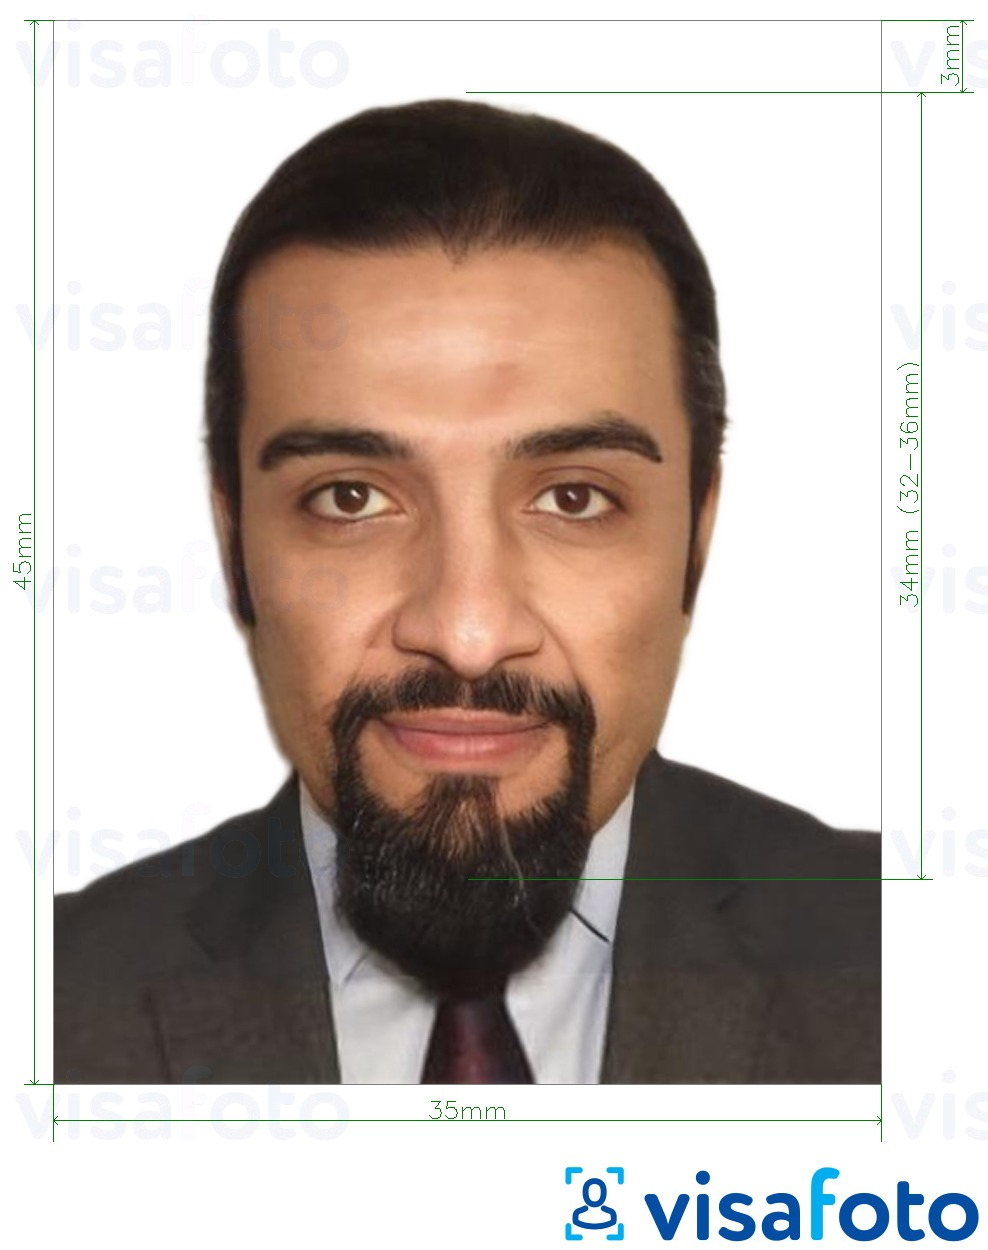 Example of photo for Lebanon passport 3.5x4.5 cm (35x45 mm) with exact size specification